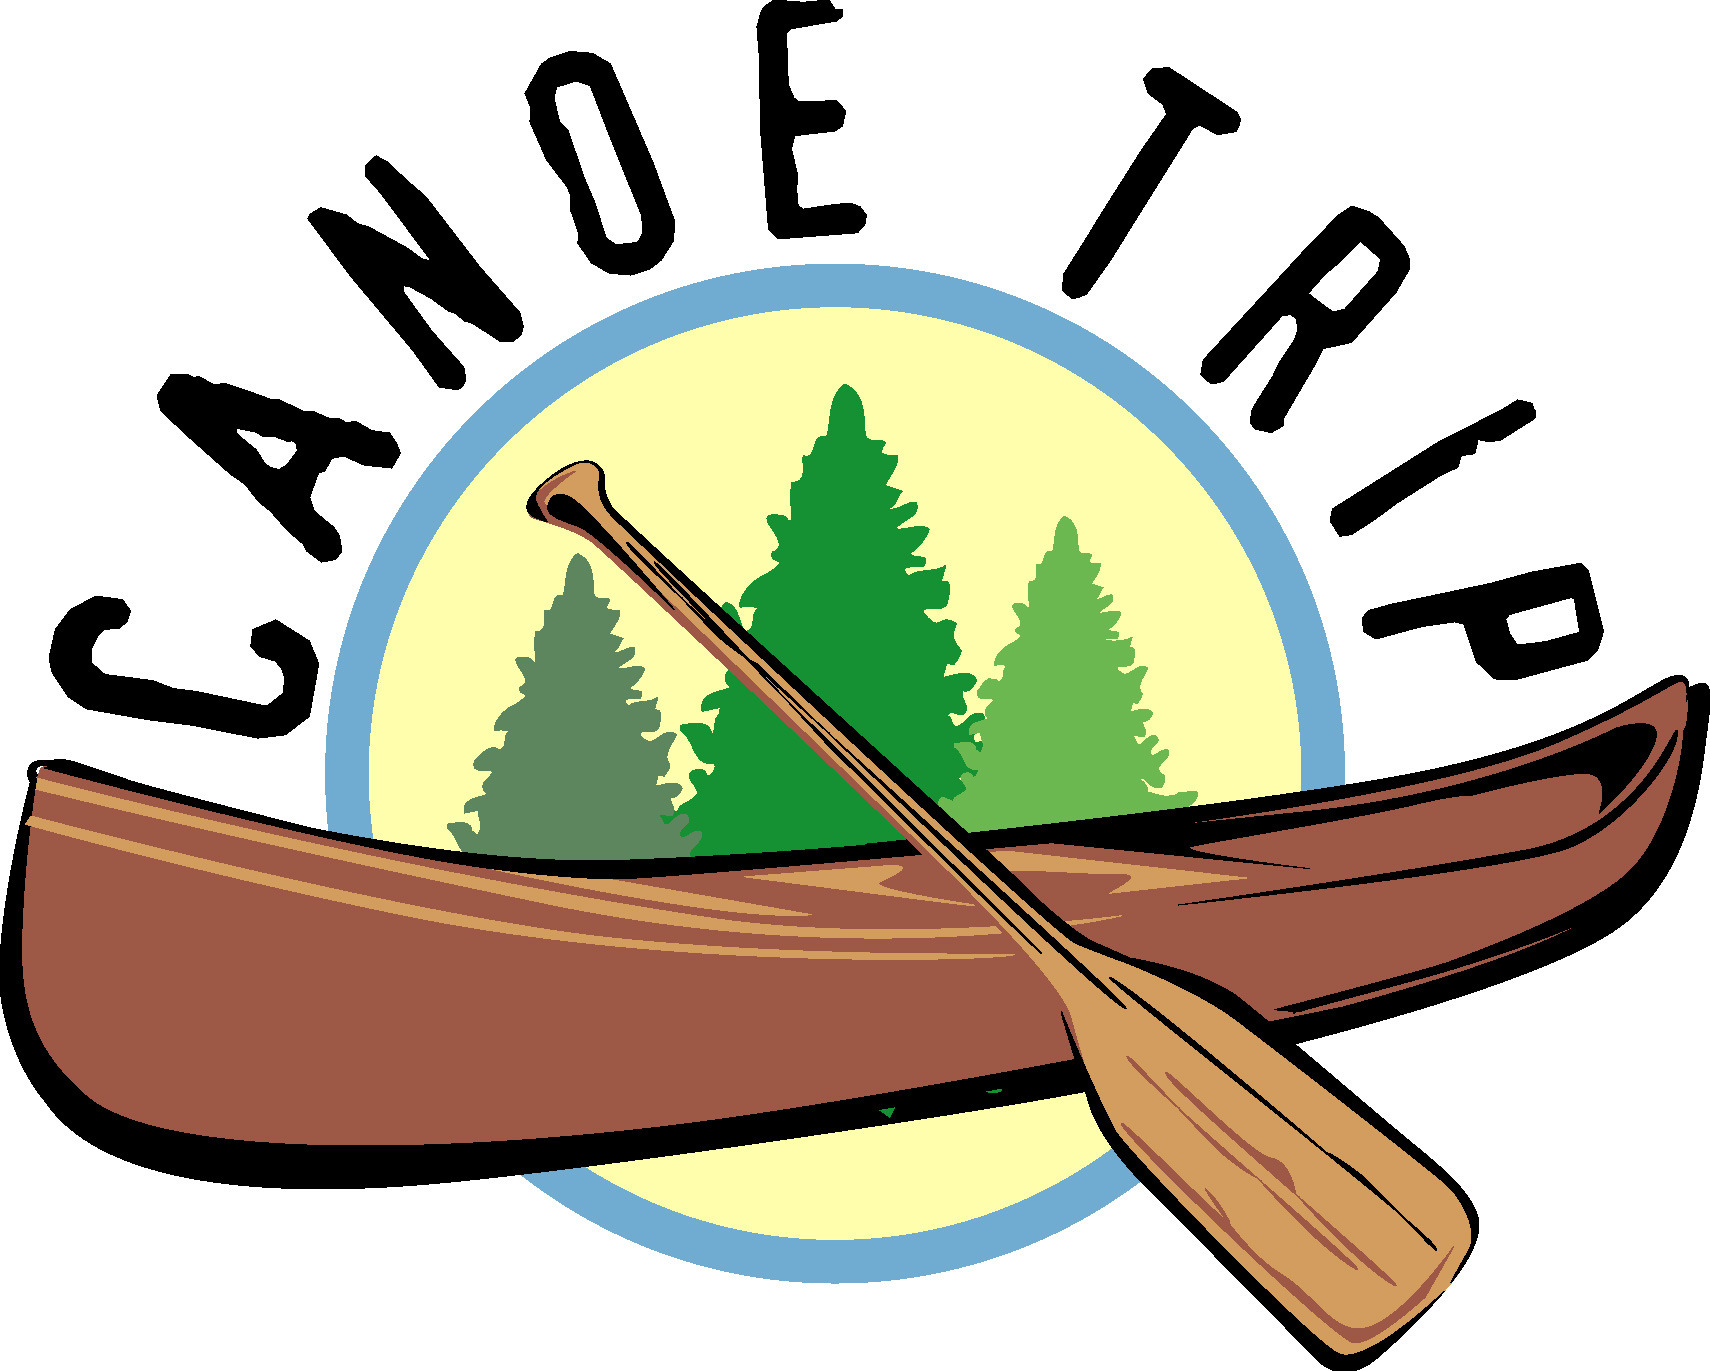 svg Canoe clipart. Free canoeing cliparts download.